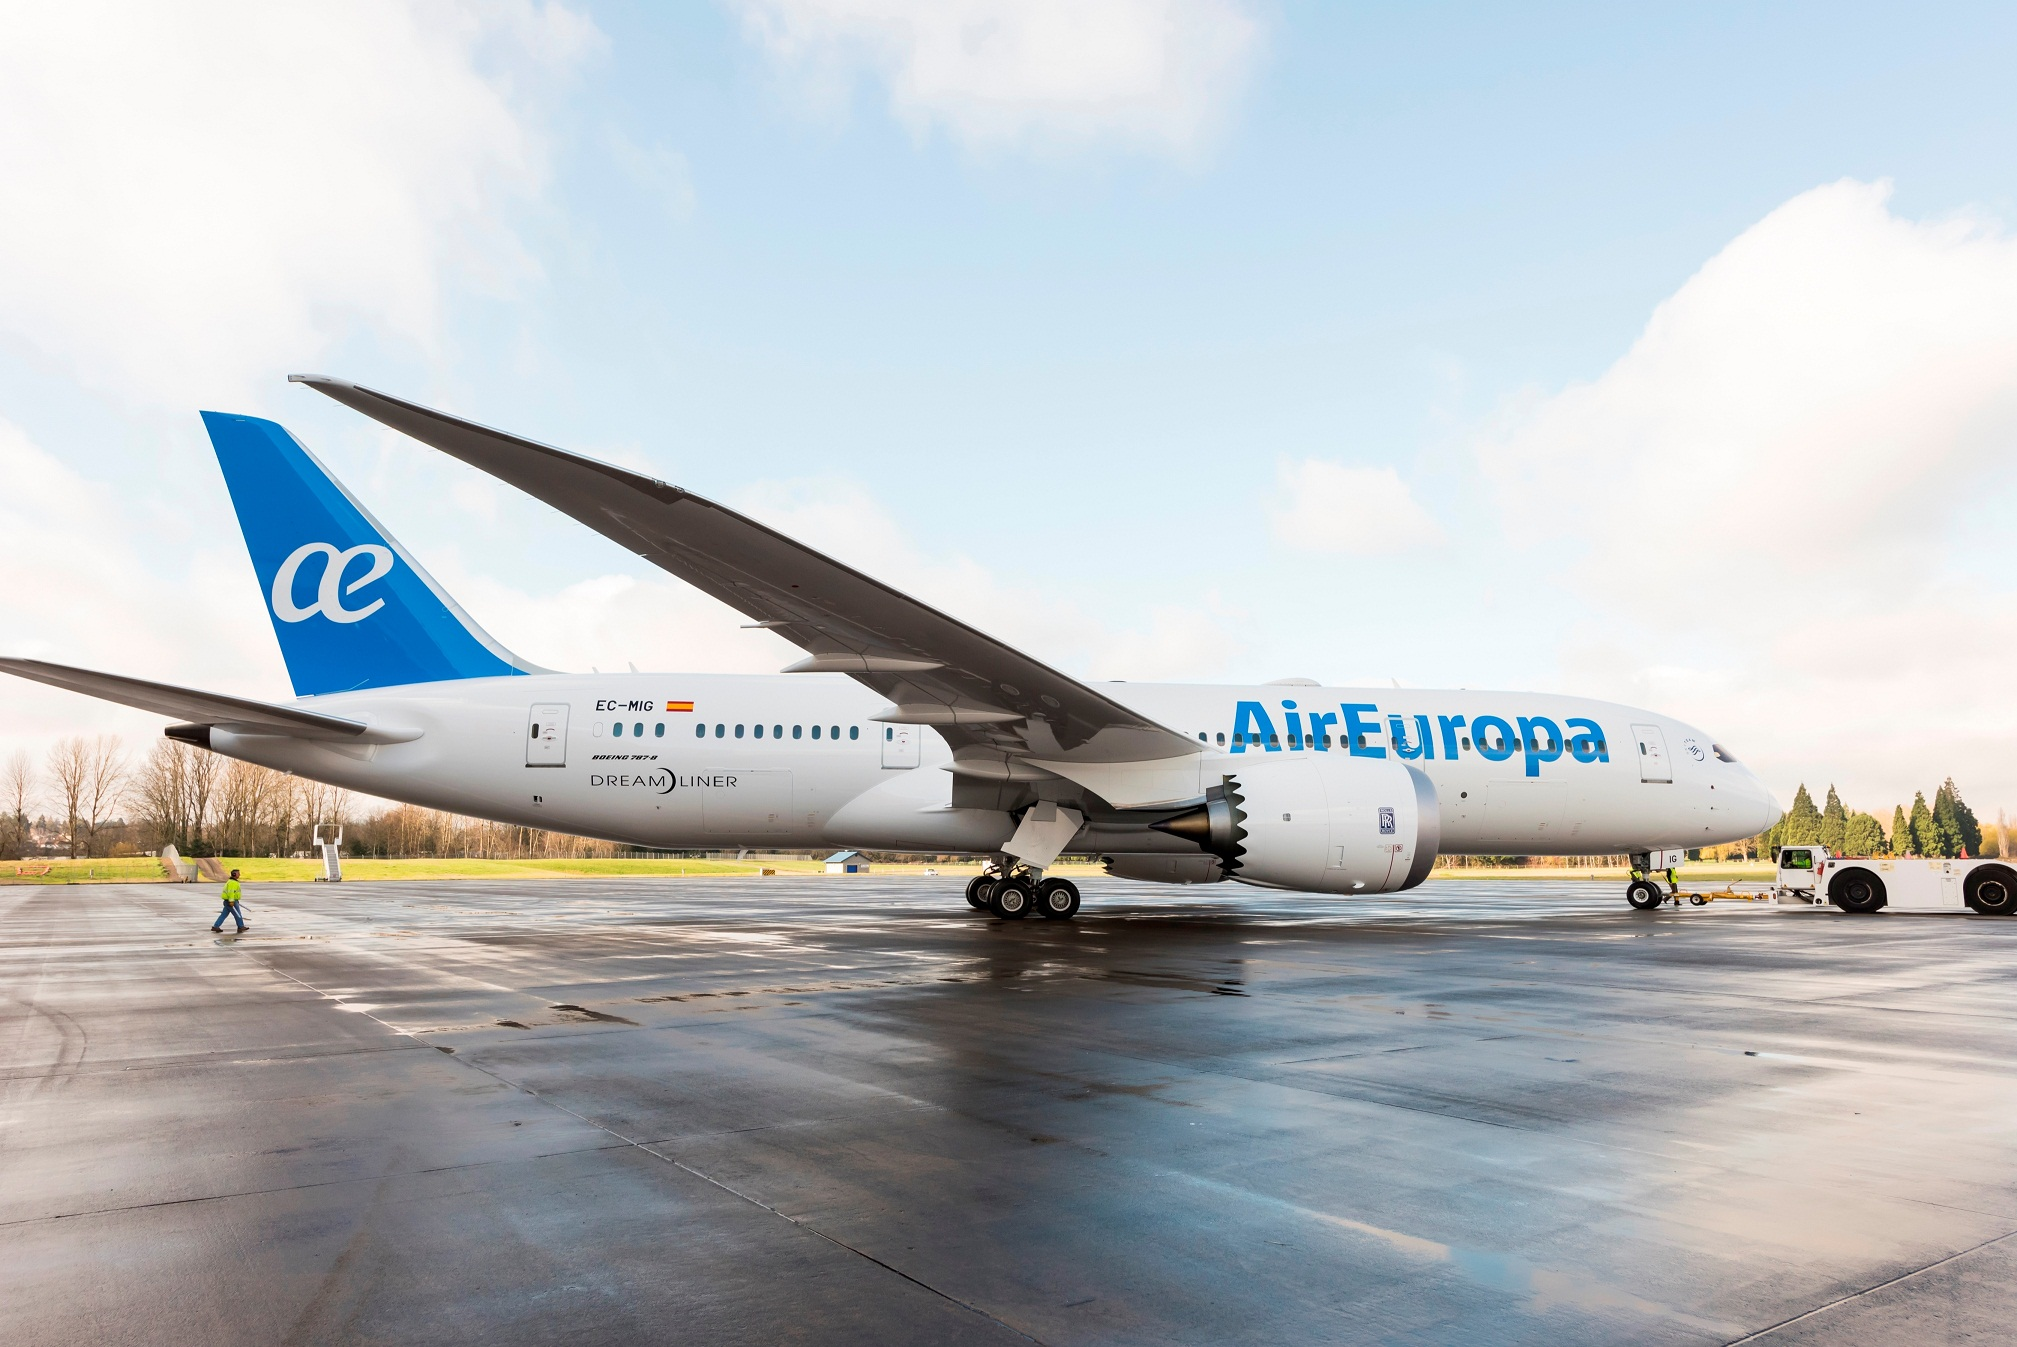 BOC Aviation entrega el primer 787-9 Dreamliner a Air Europa